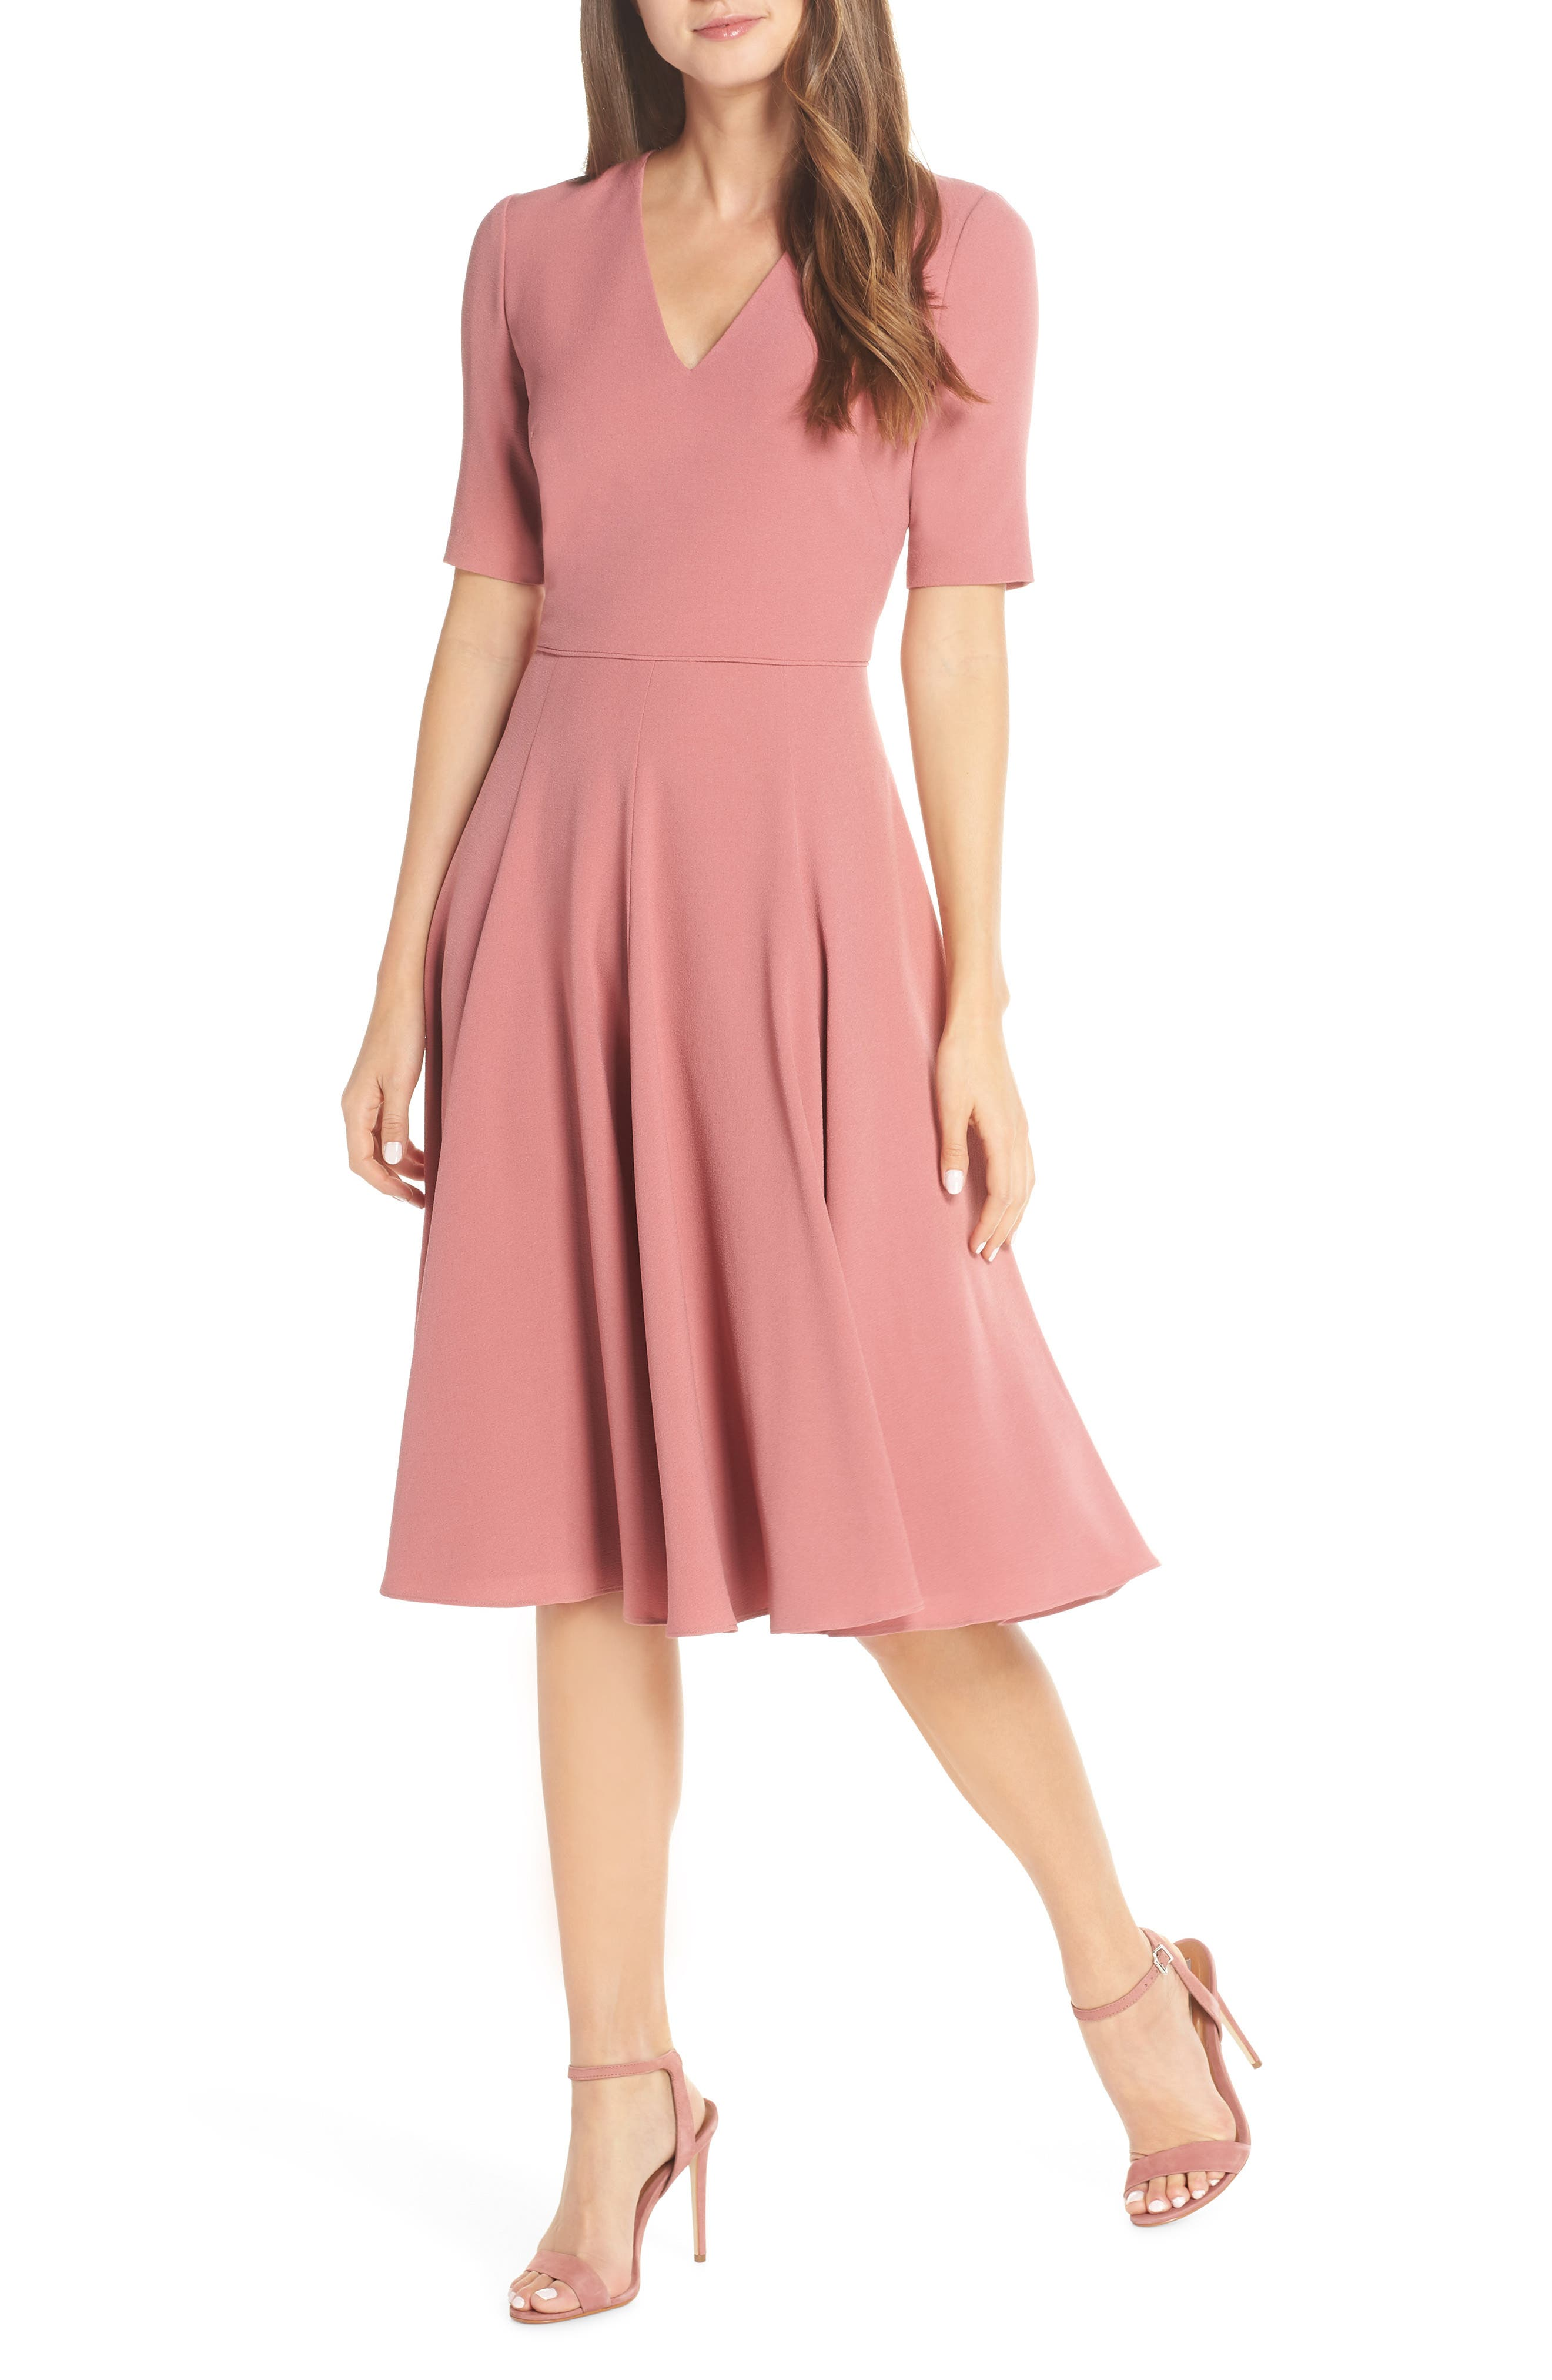 Gal Meets Glam Collection Edith City Crepe Fit & Flare Midi Dress, 8 (similar to 1) - Pink